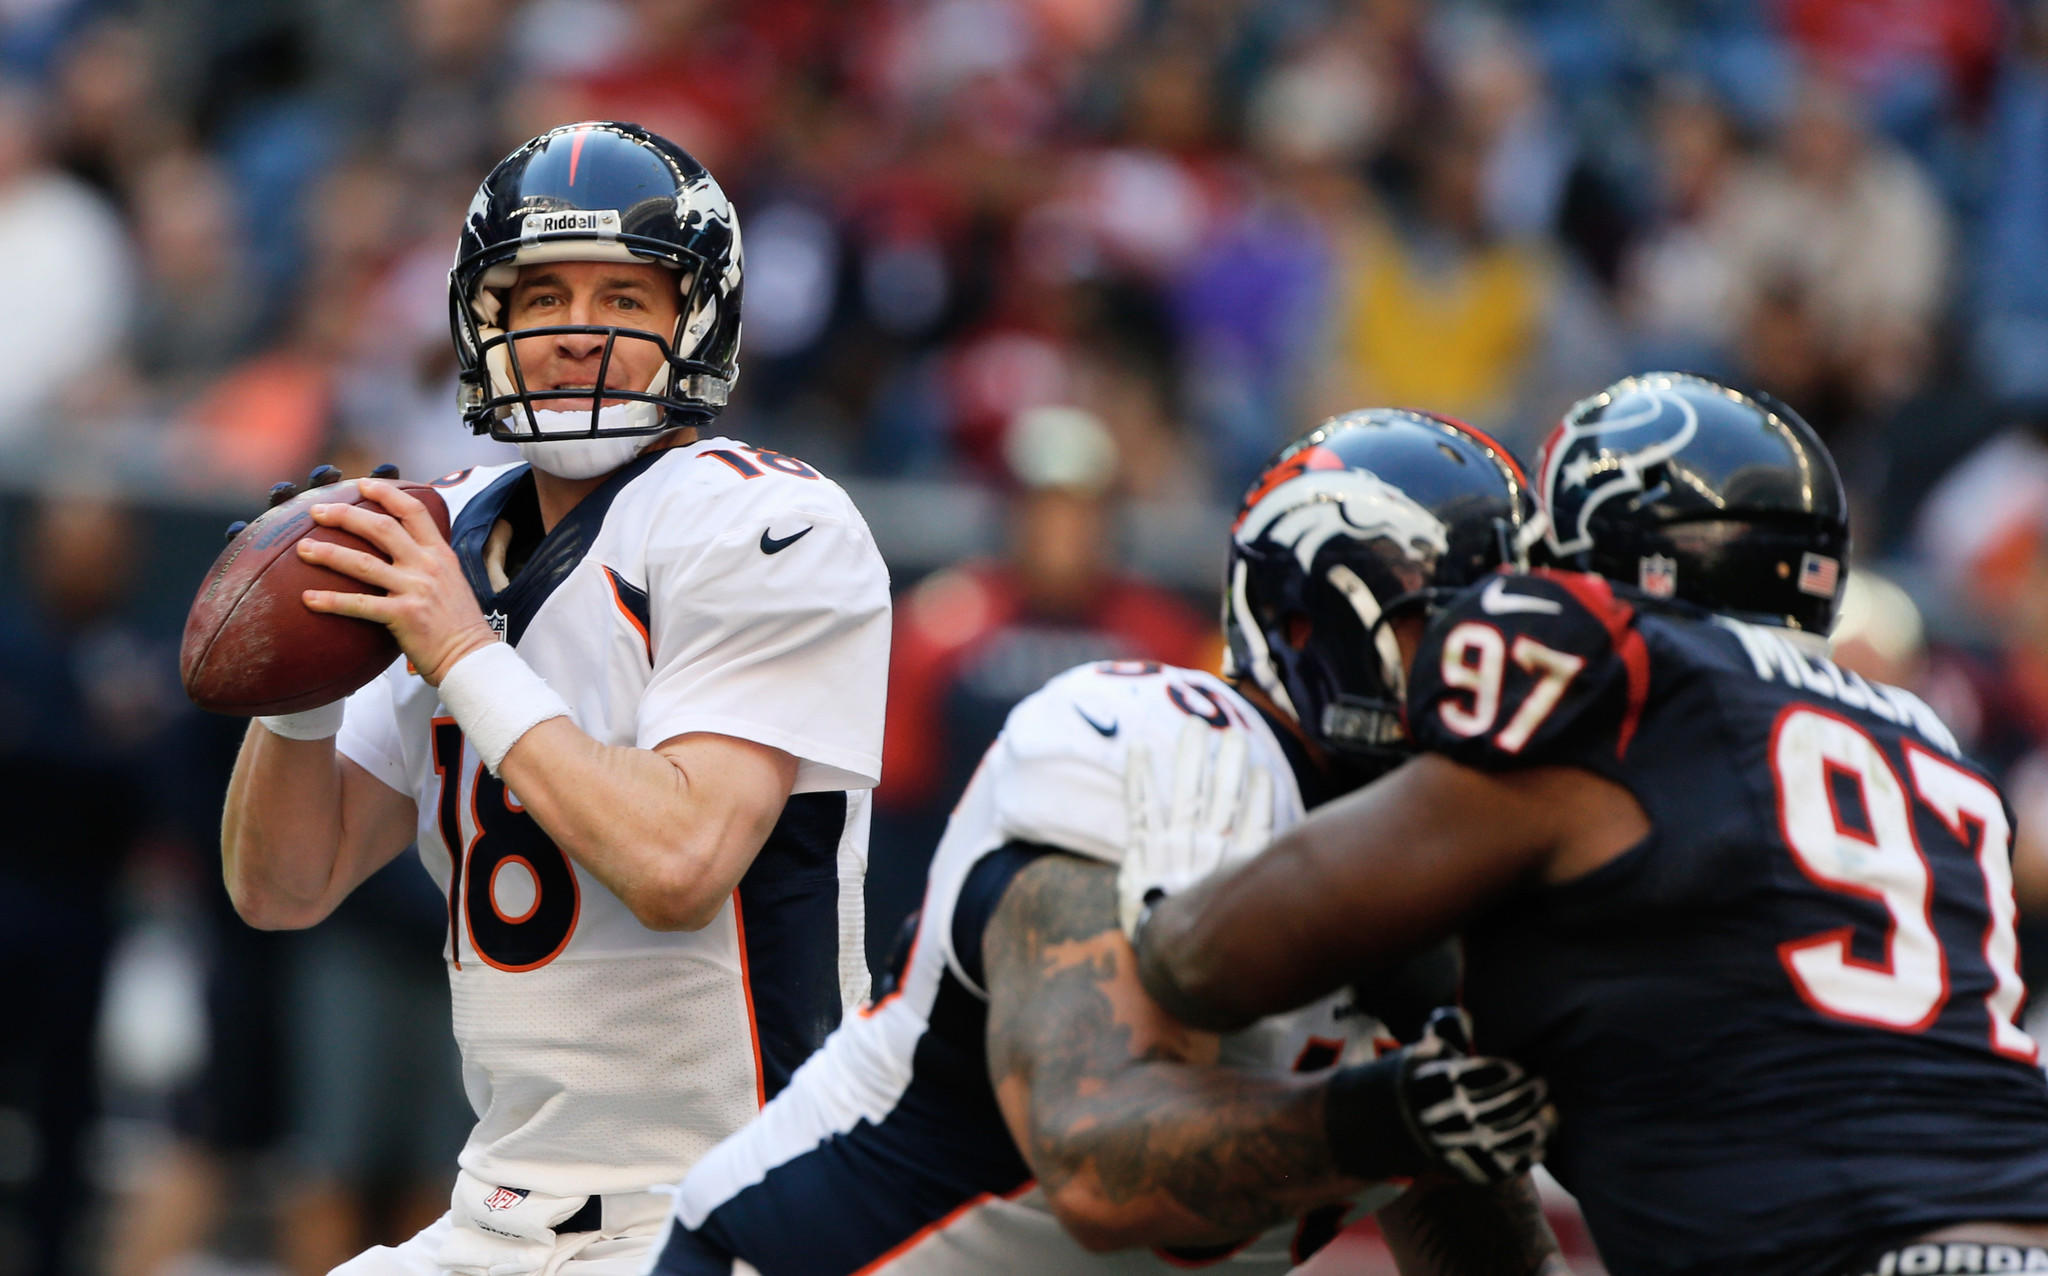 Peyton Manning of the Denver Broncos drops back to pass during the second half of the game against the Houston Texans at Reliant Stadium on Dec. 22 in Houston, Texas.